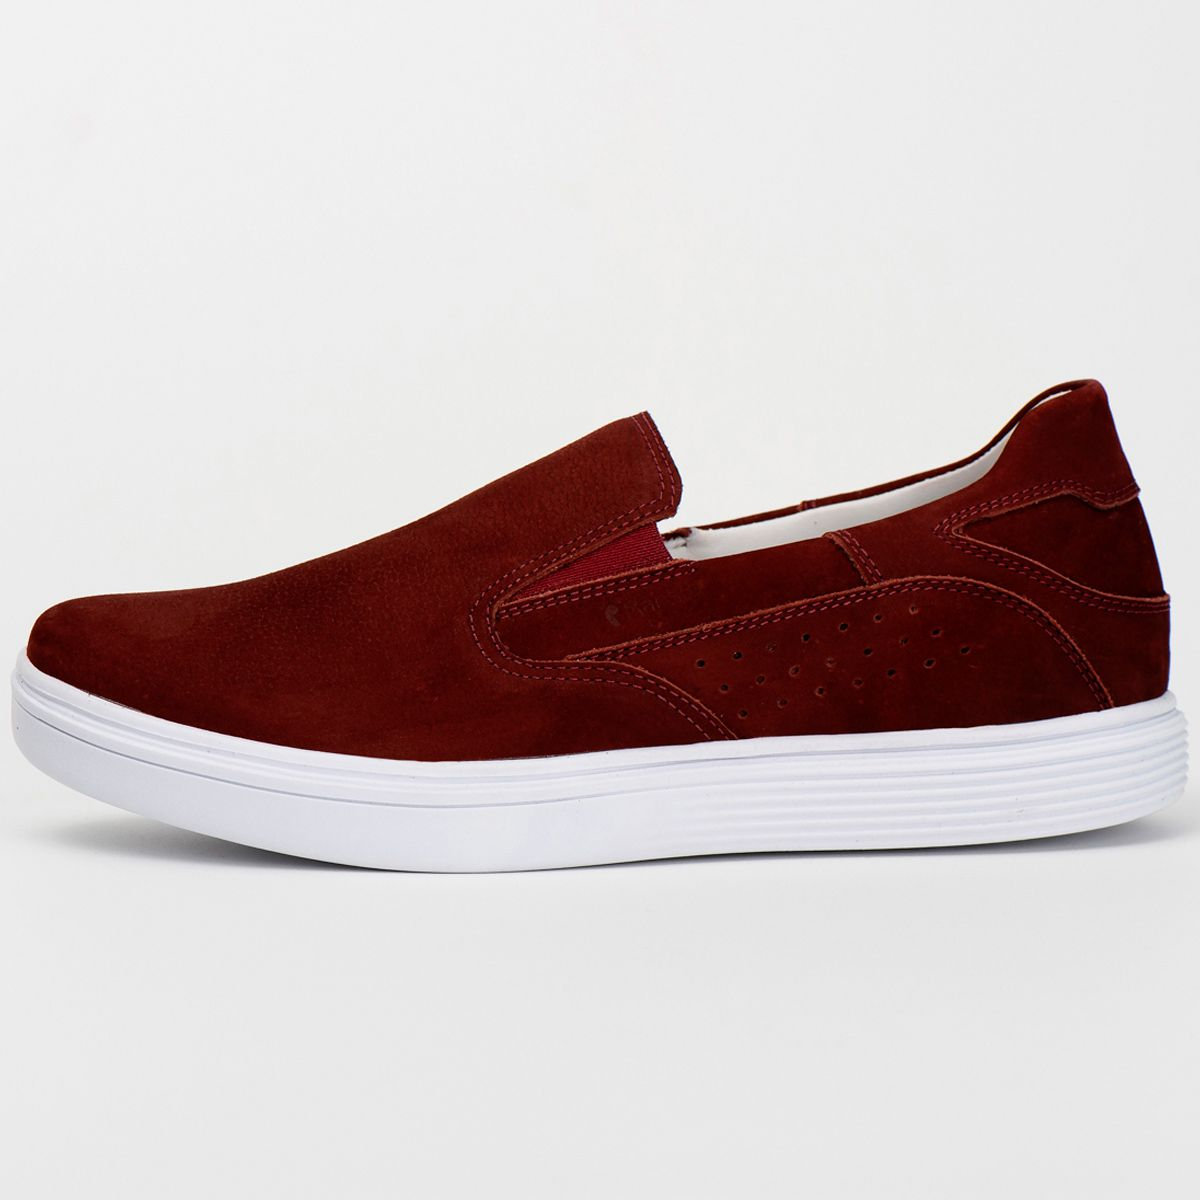 Slip On Masculino Couro Nobuck Bordo Ranster Comfort - 3018